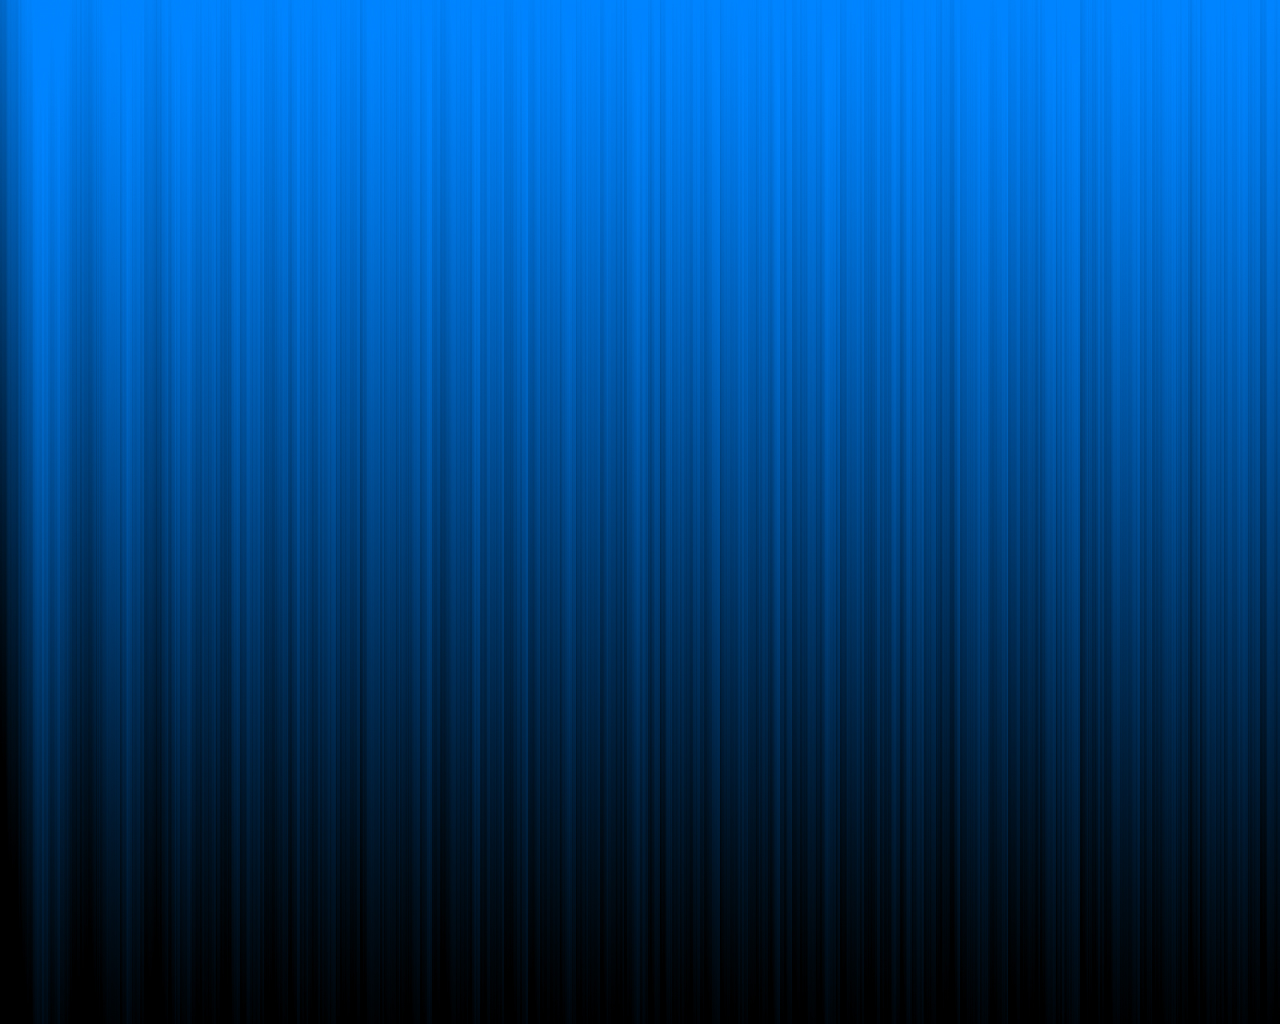 img wallpapers blue wallpaper juliomino 9957 1280x1024